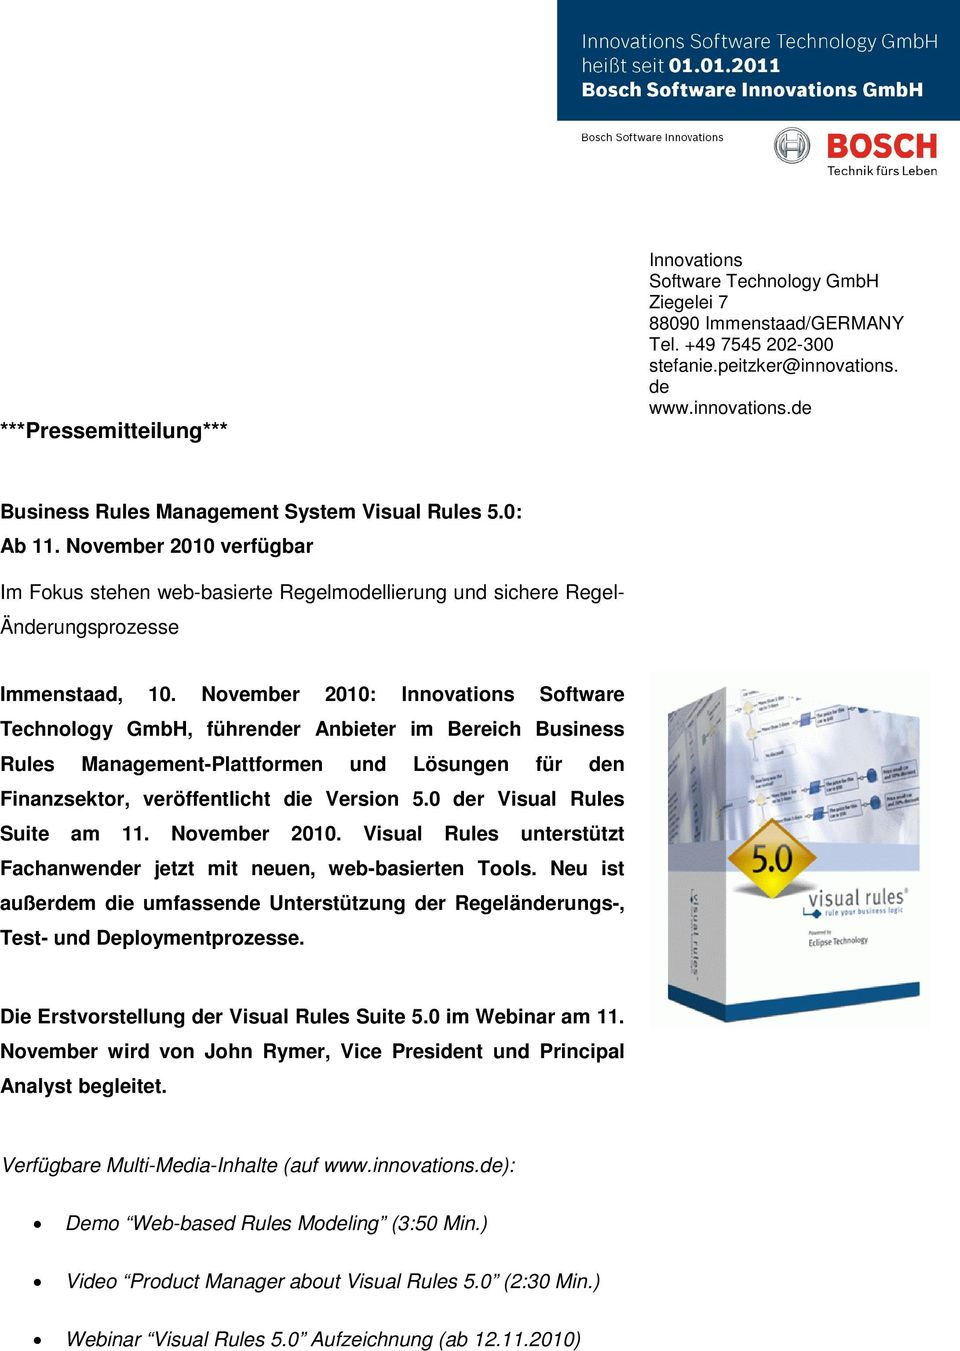 November 2010: Innovations Software Technology GmbH, führender Anbieter im Bereich Business Rules Management-Plattformen und Lösungen für den Finanzsektor, veröffentlicht die Version 5.